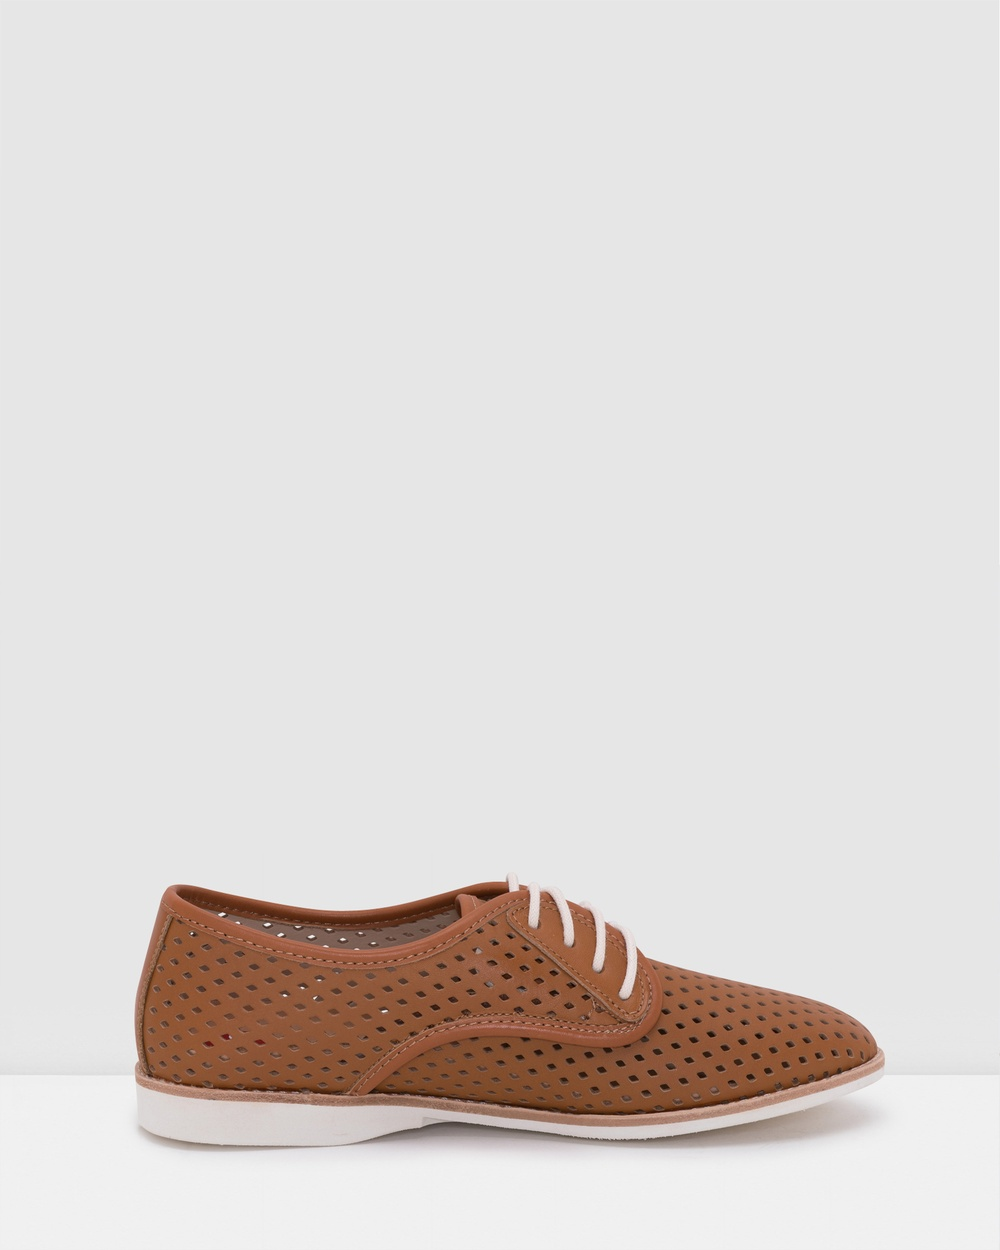 Rollie Derby Punch Shoes Flats Brown Australia